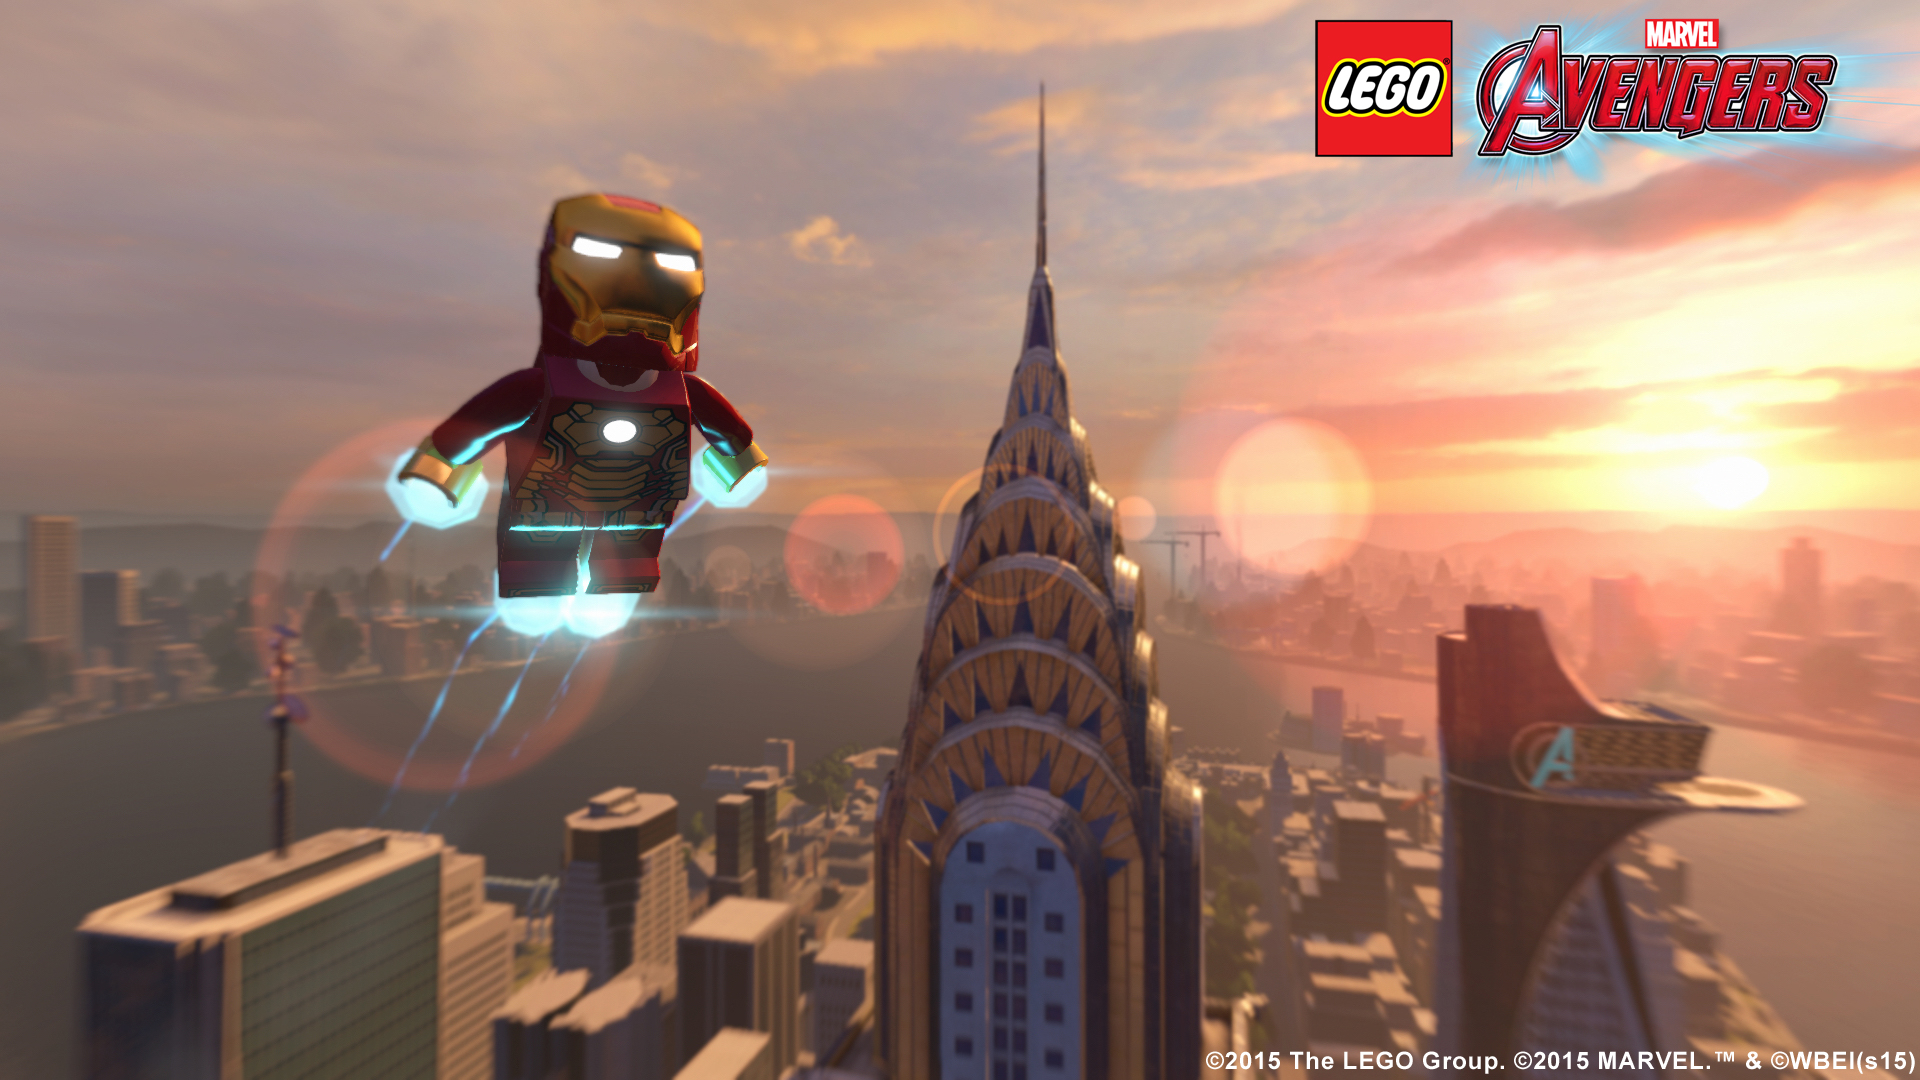 lego-marvels-avengers-review-screen-ironman